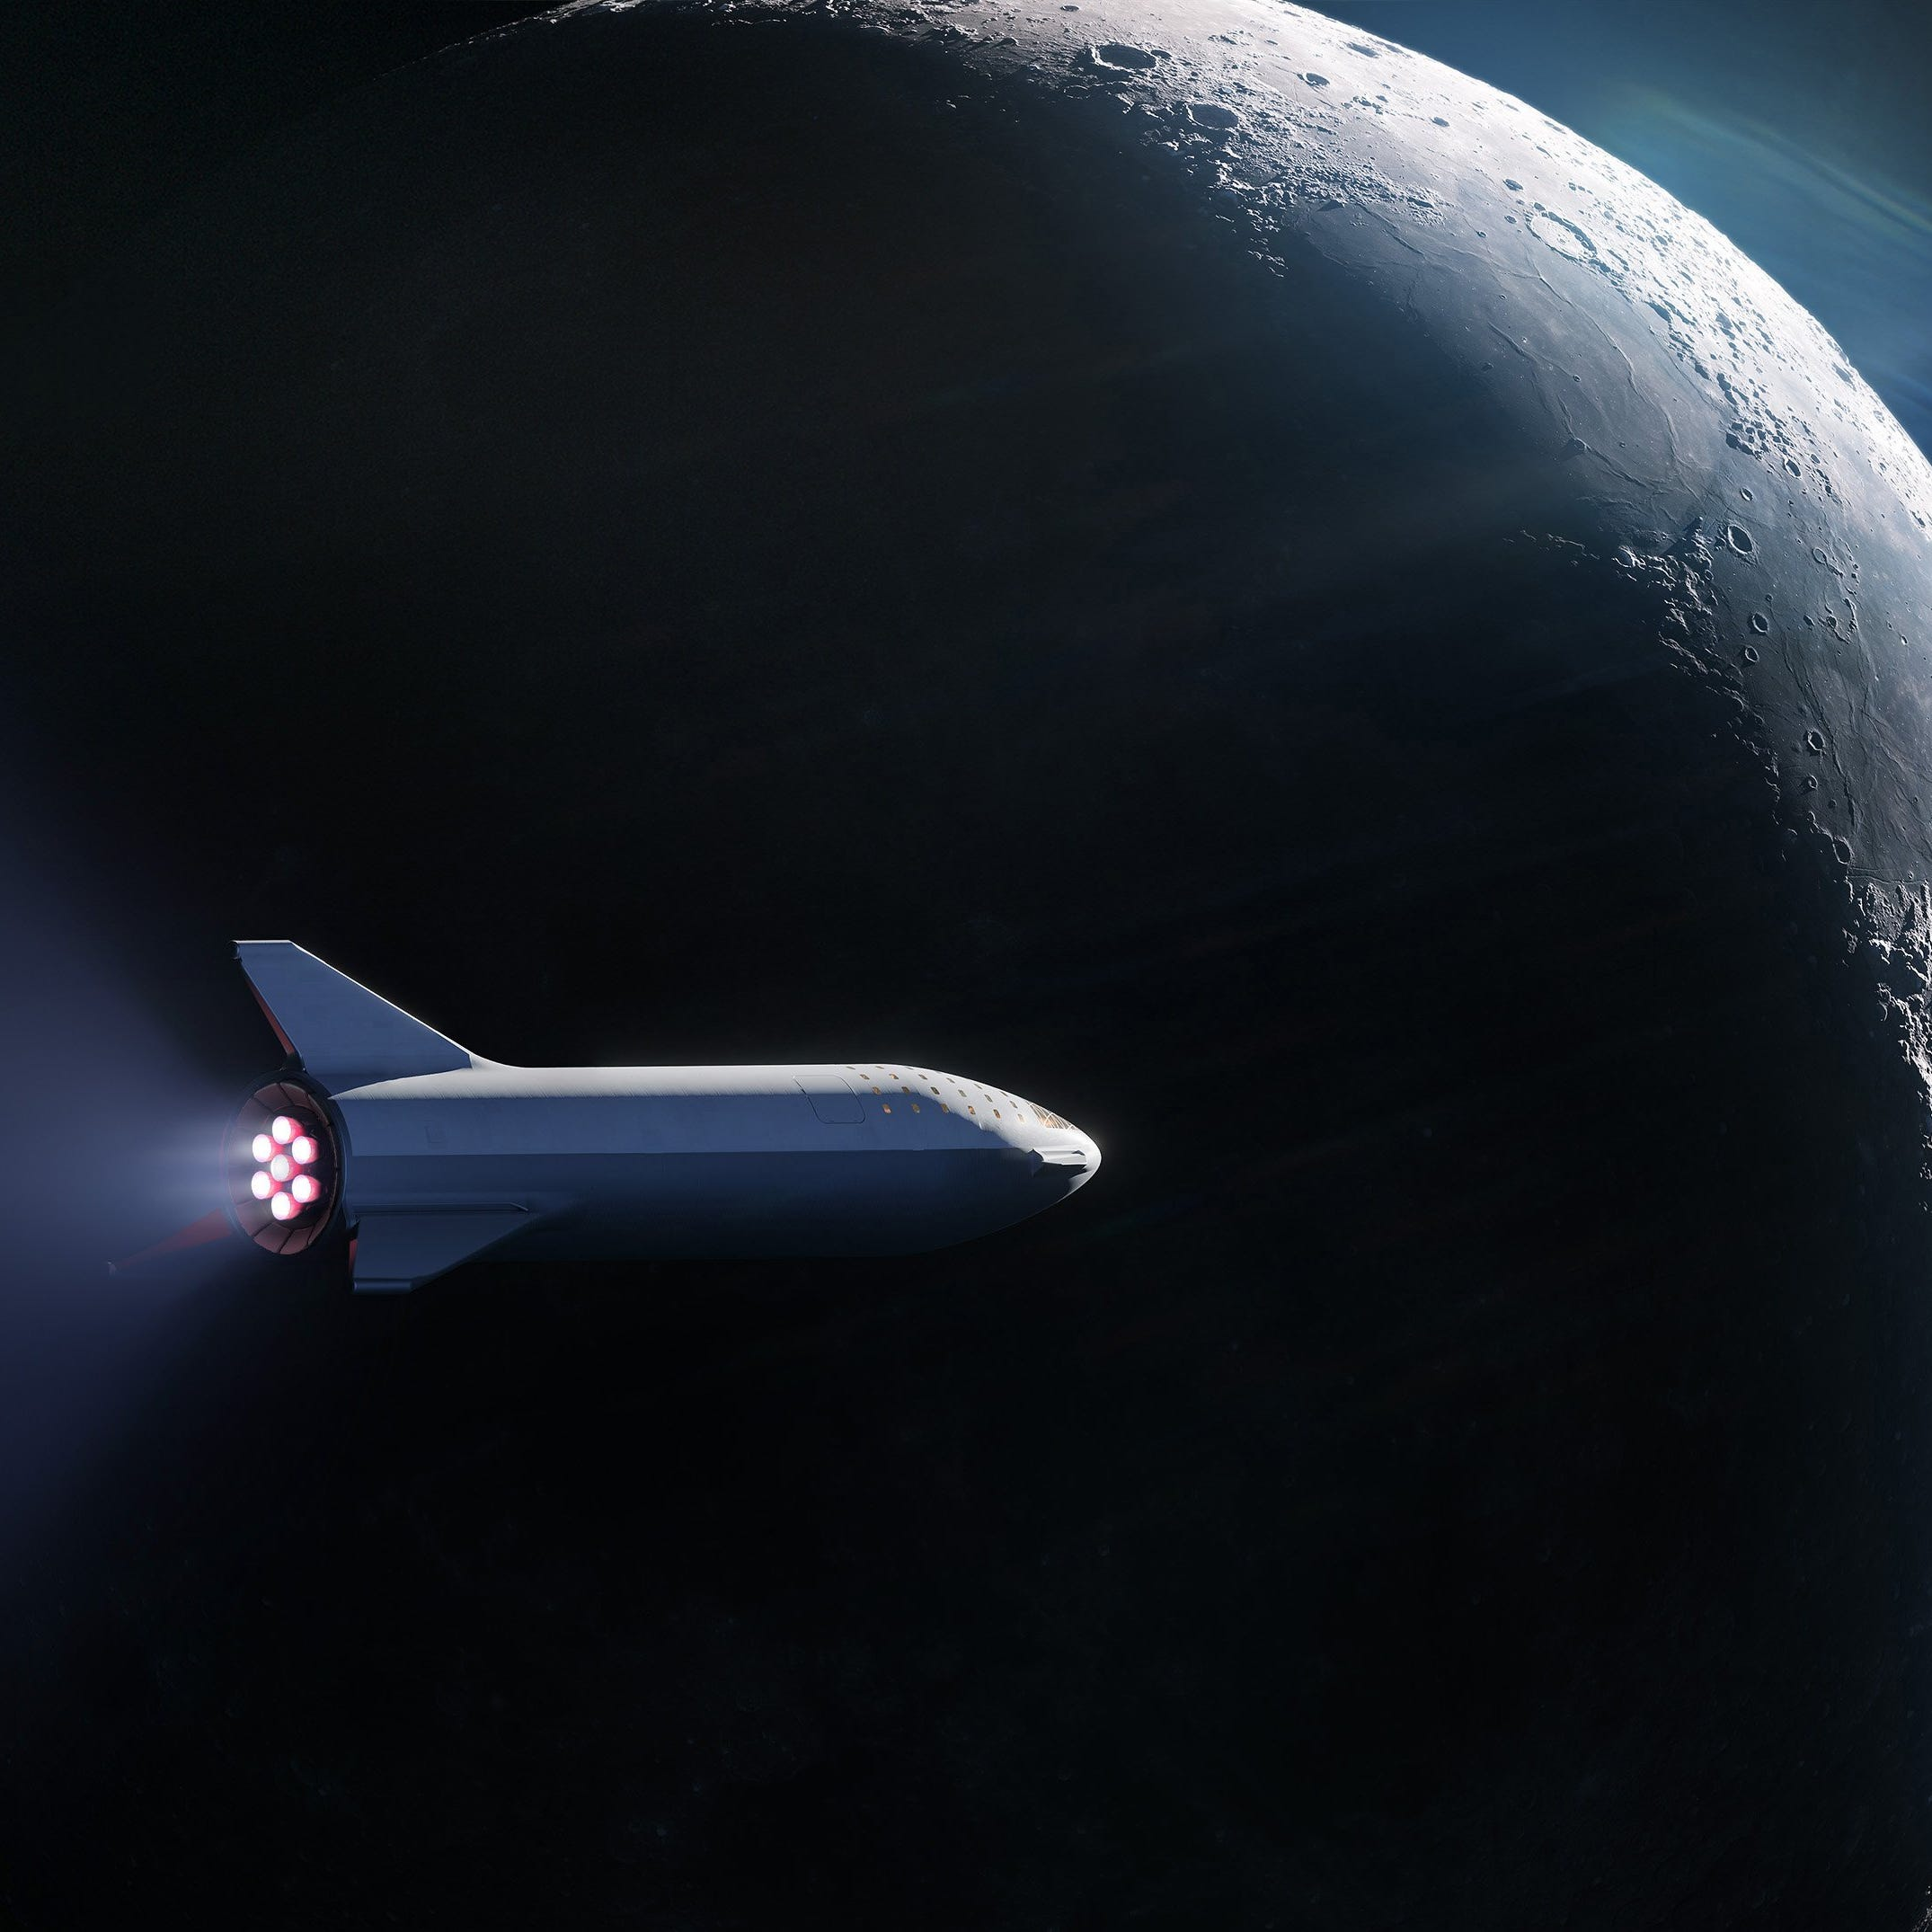 Watch SpaceX announce who will launch on its BFR vehicle to the moon